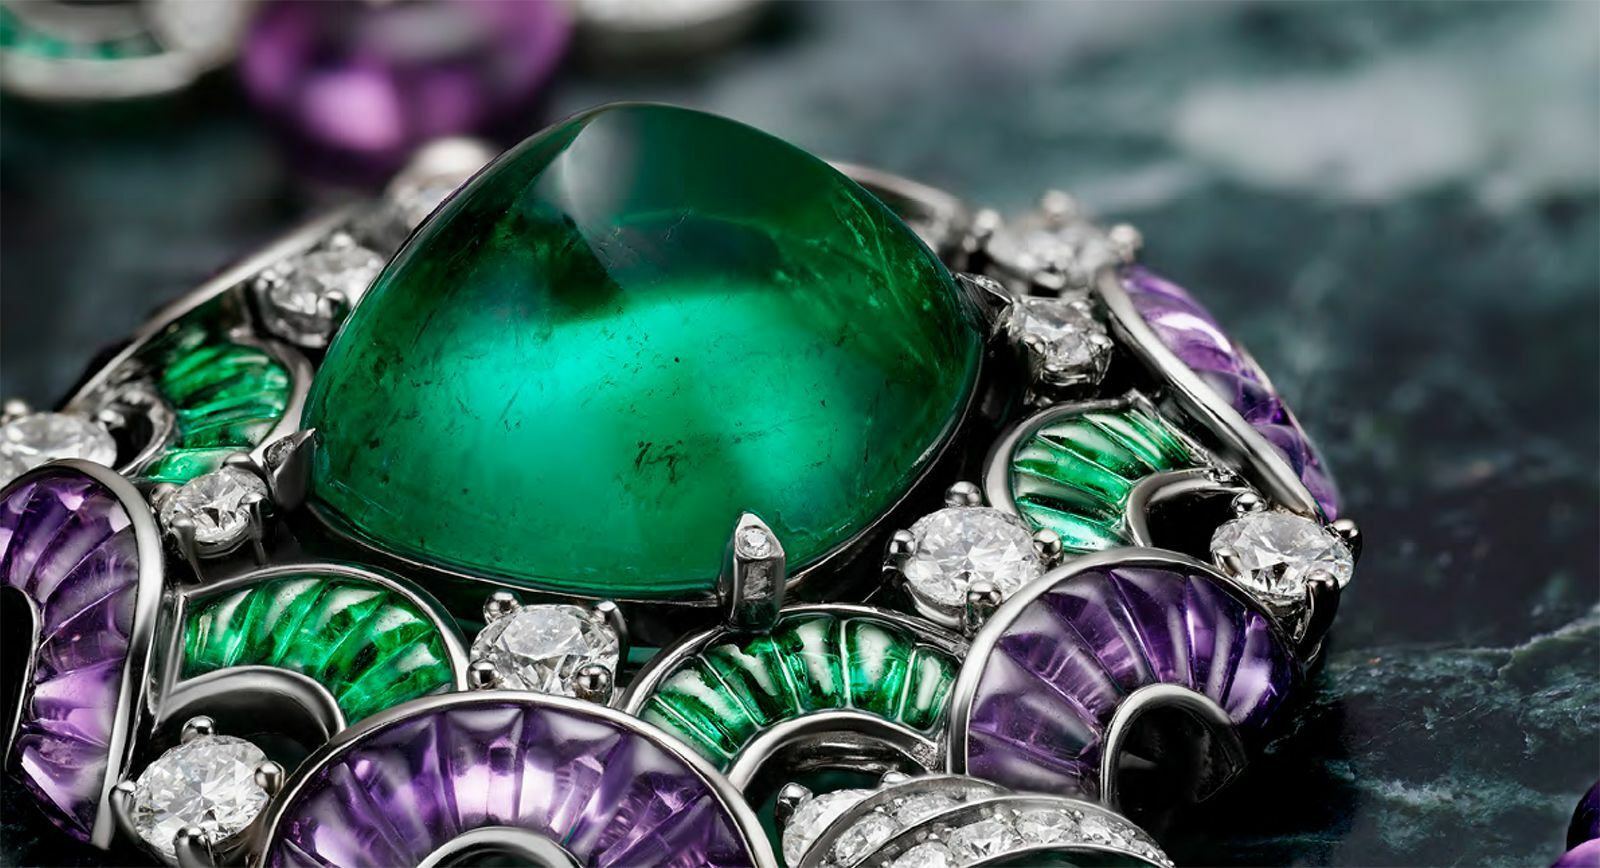 Bulgari La Festa necklace with a sugarloaf emerald